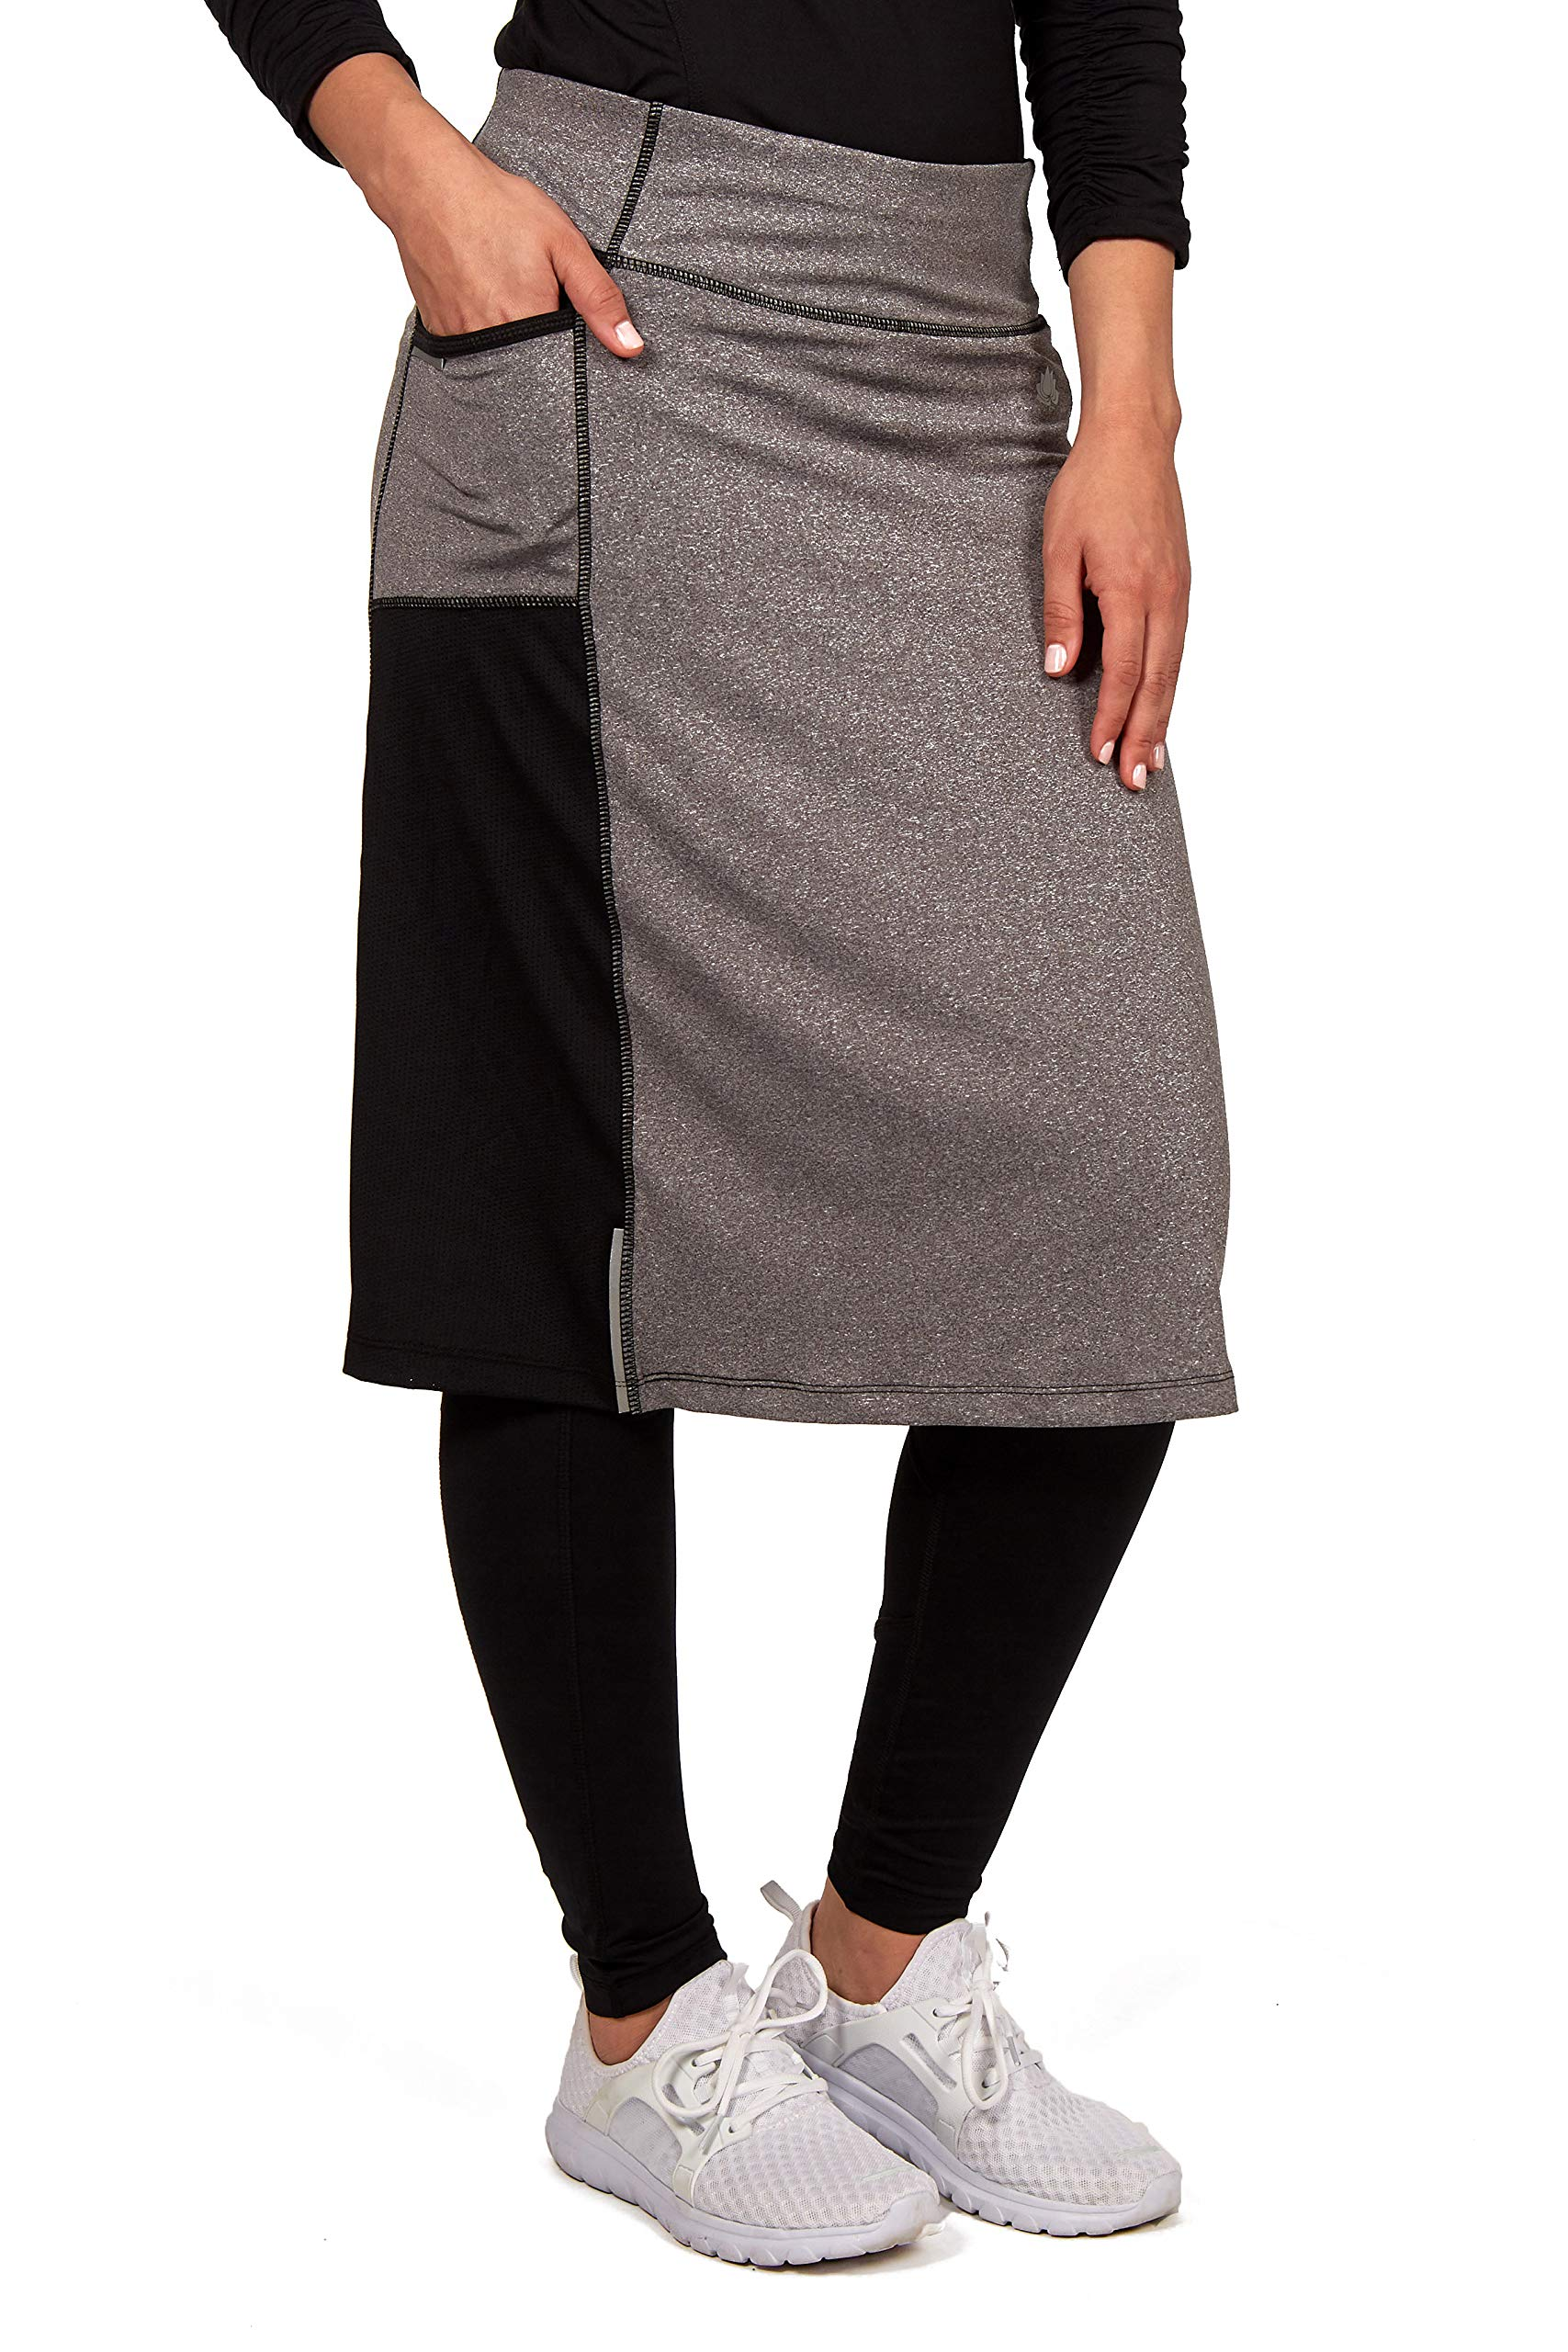 Color Block Ankle Snoga Midi Athletic Skirt with Pockets, Grey/Black - XS